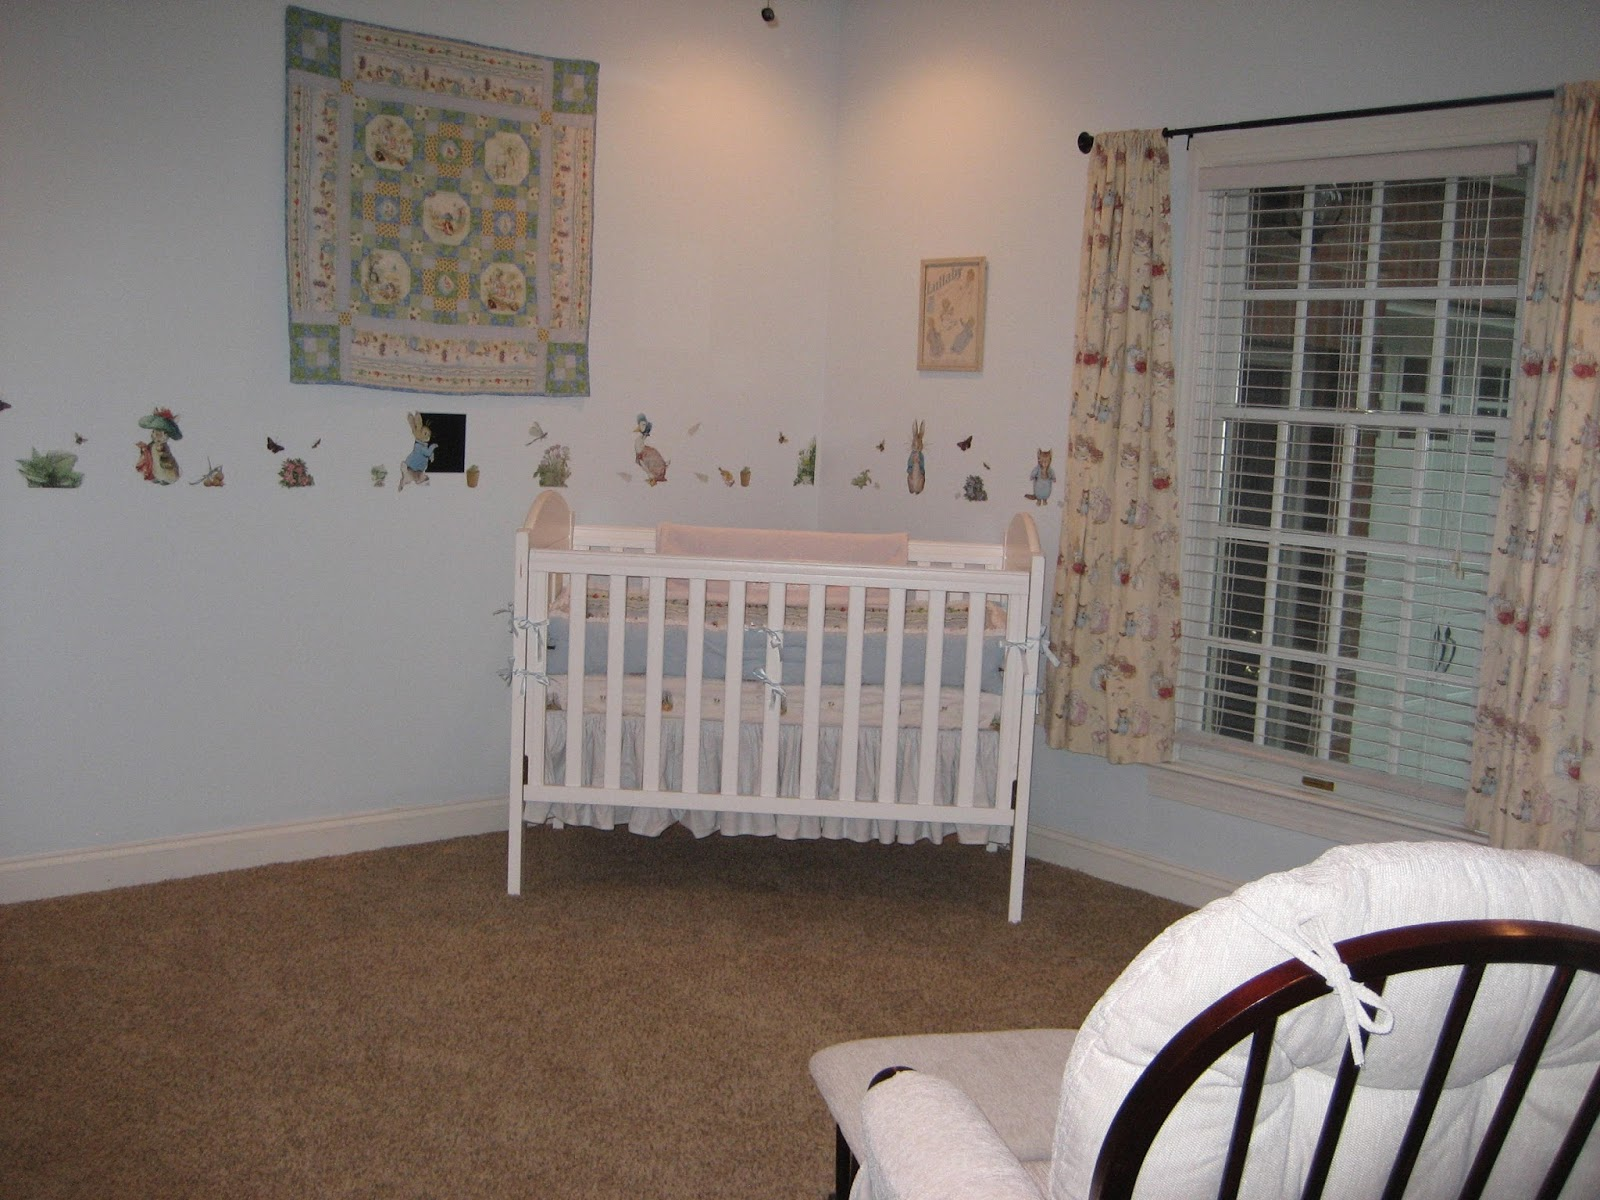 At home in frogs hollow baby 39 s peter rabbit nursery - Peter rabbit nursery border ...